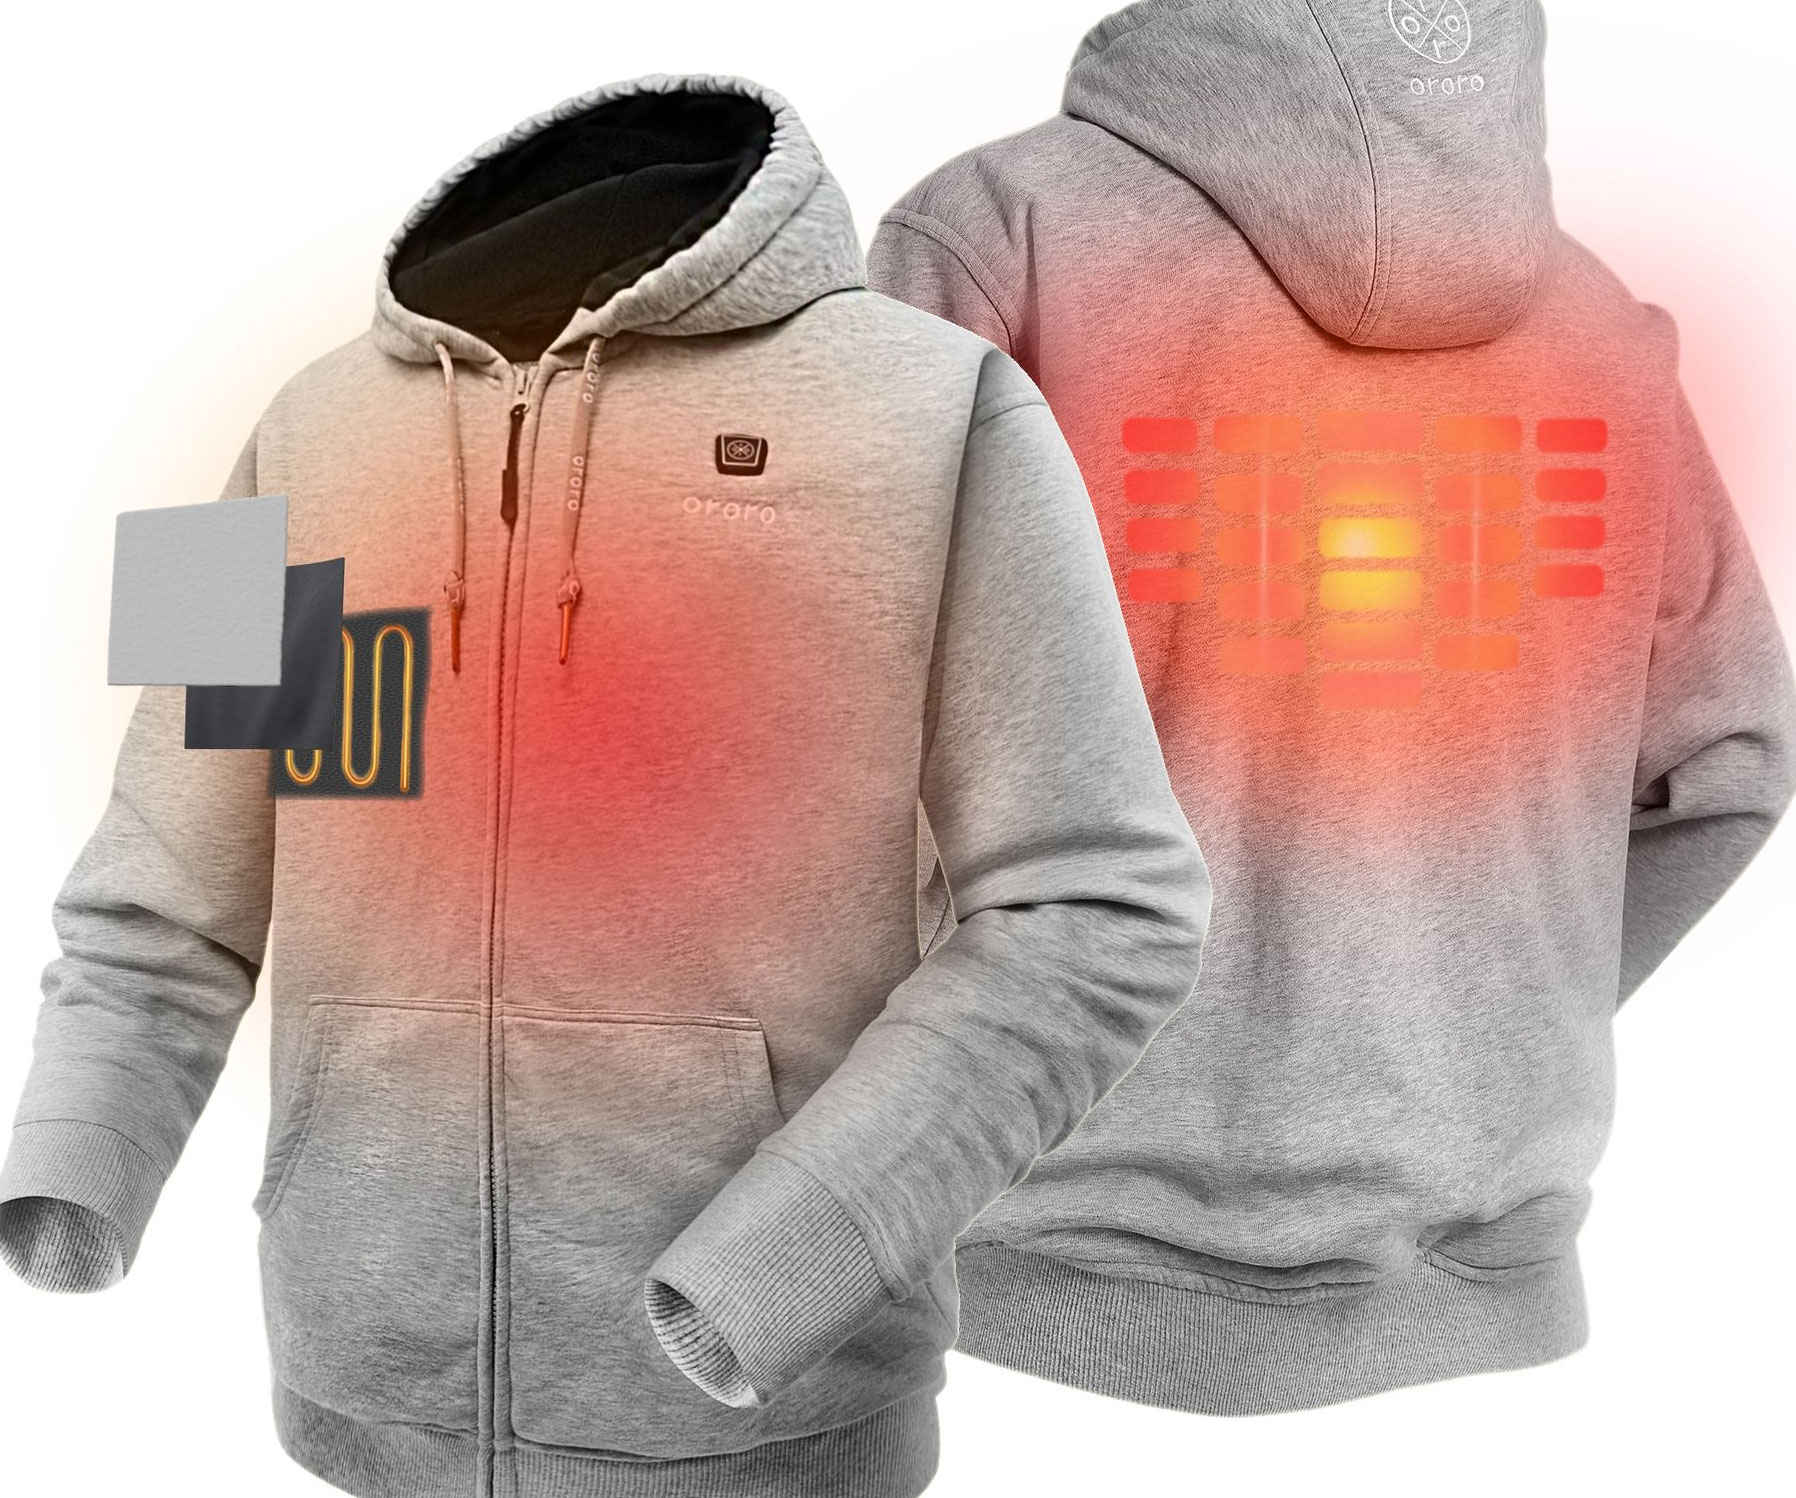 Heated Hoodie - coolthings.us